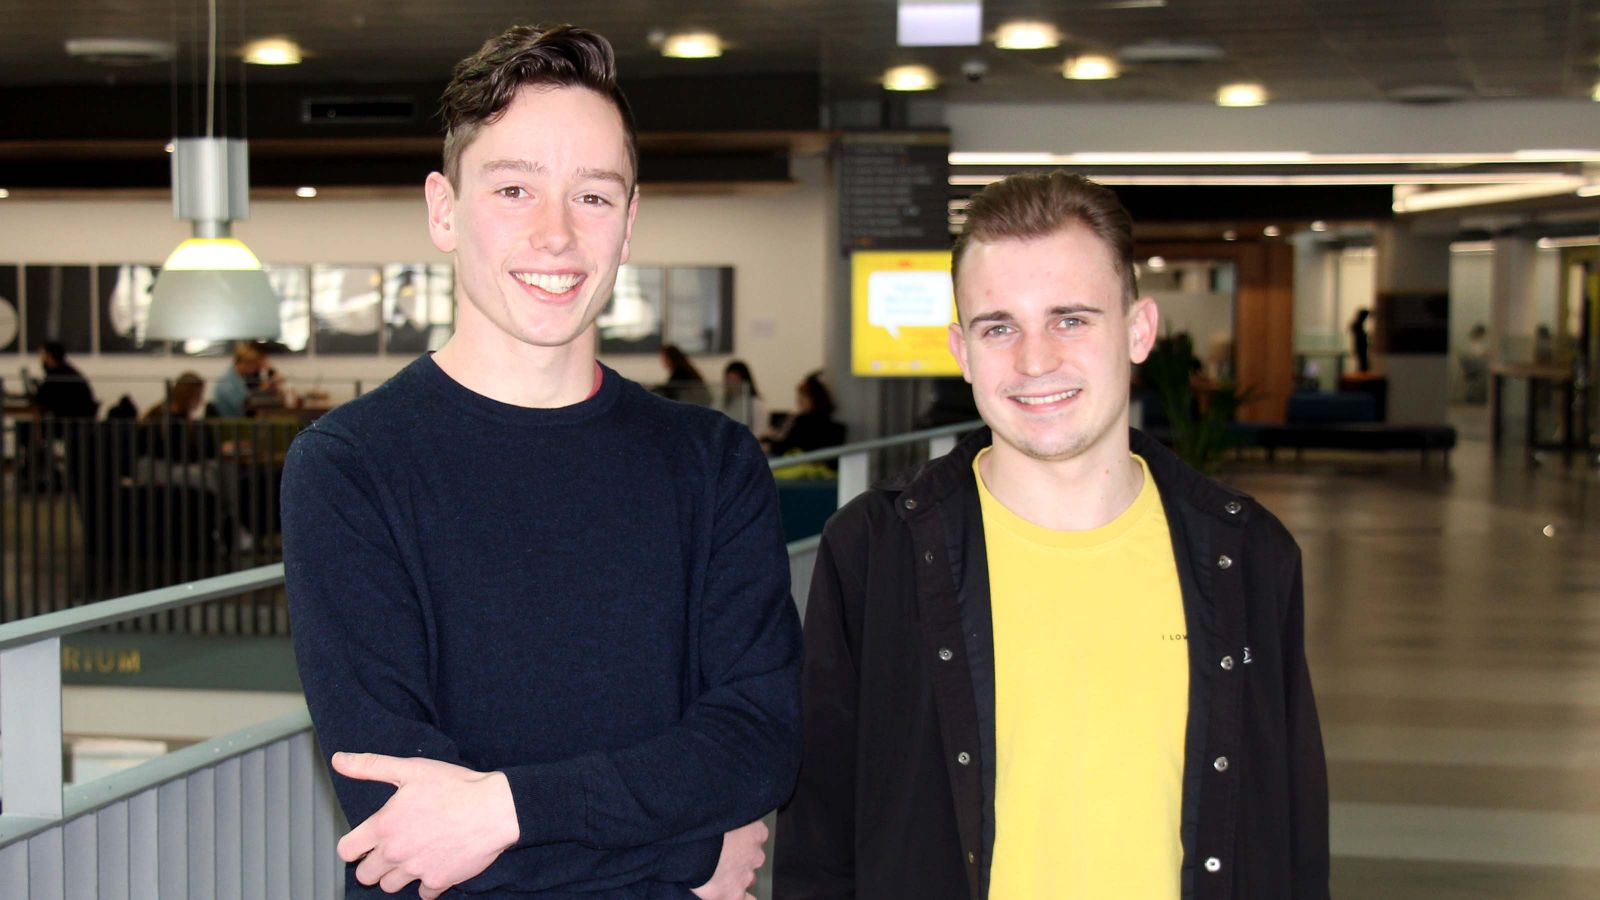 Conor Doherty-Craig (left) and Benji Pritchard (right), founders of Techne.